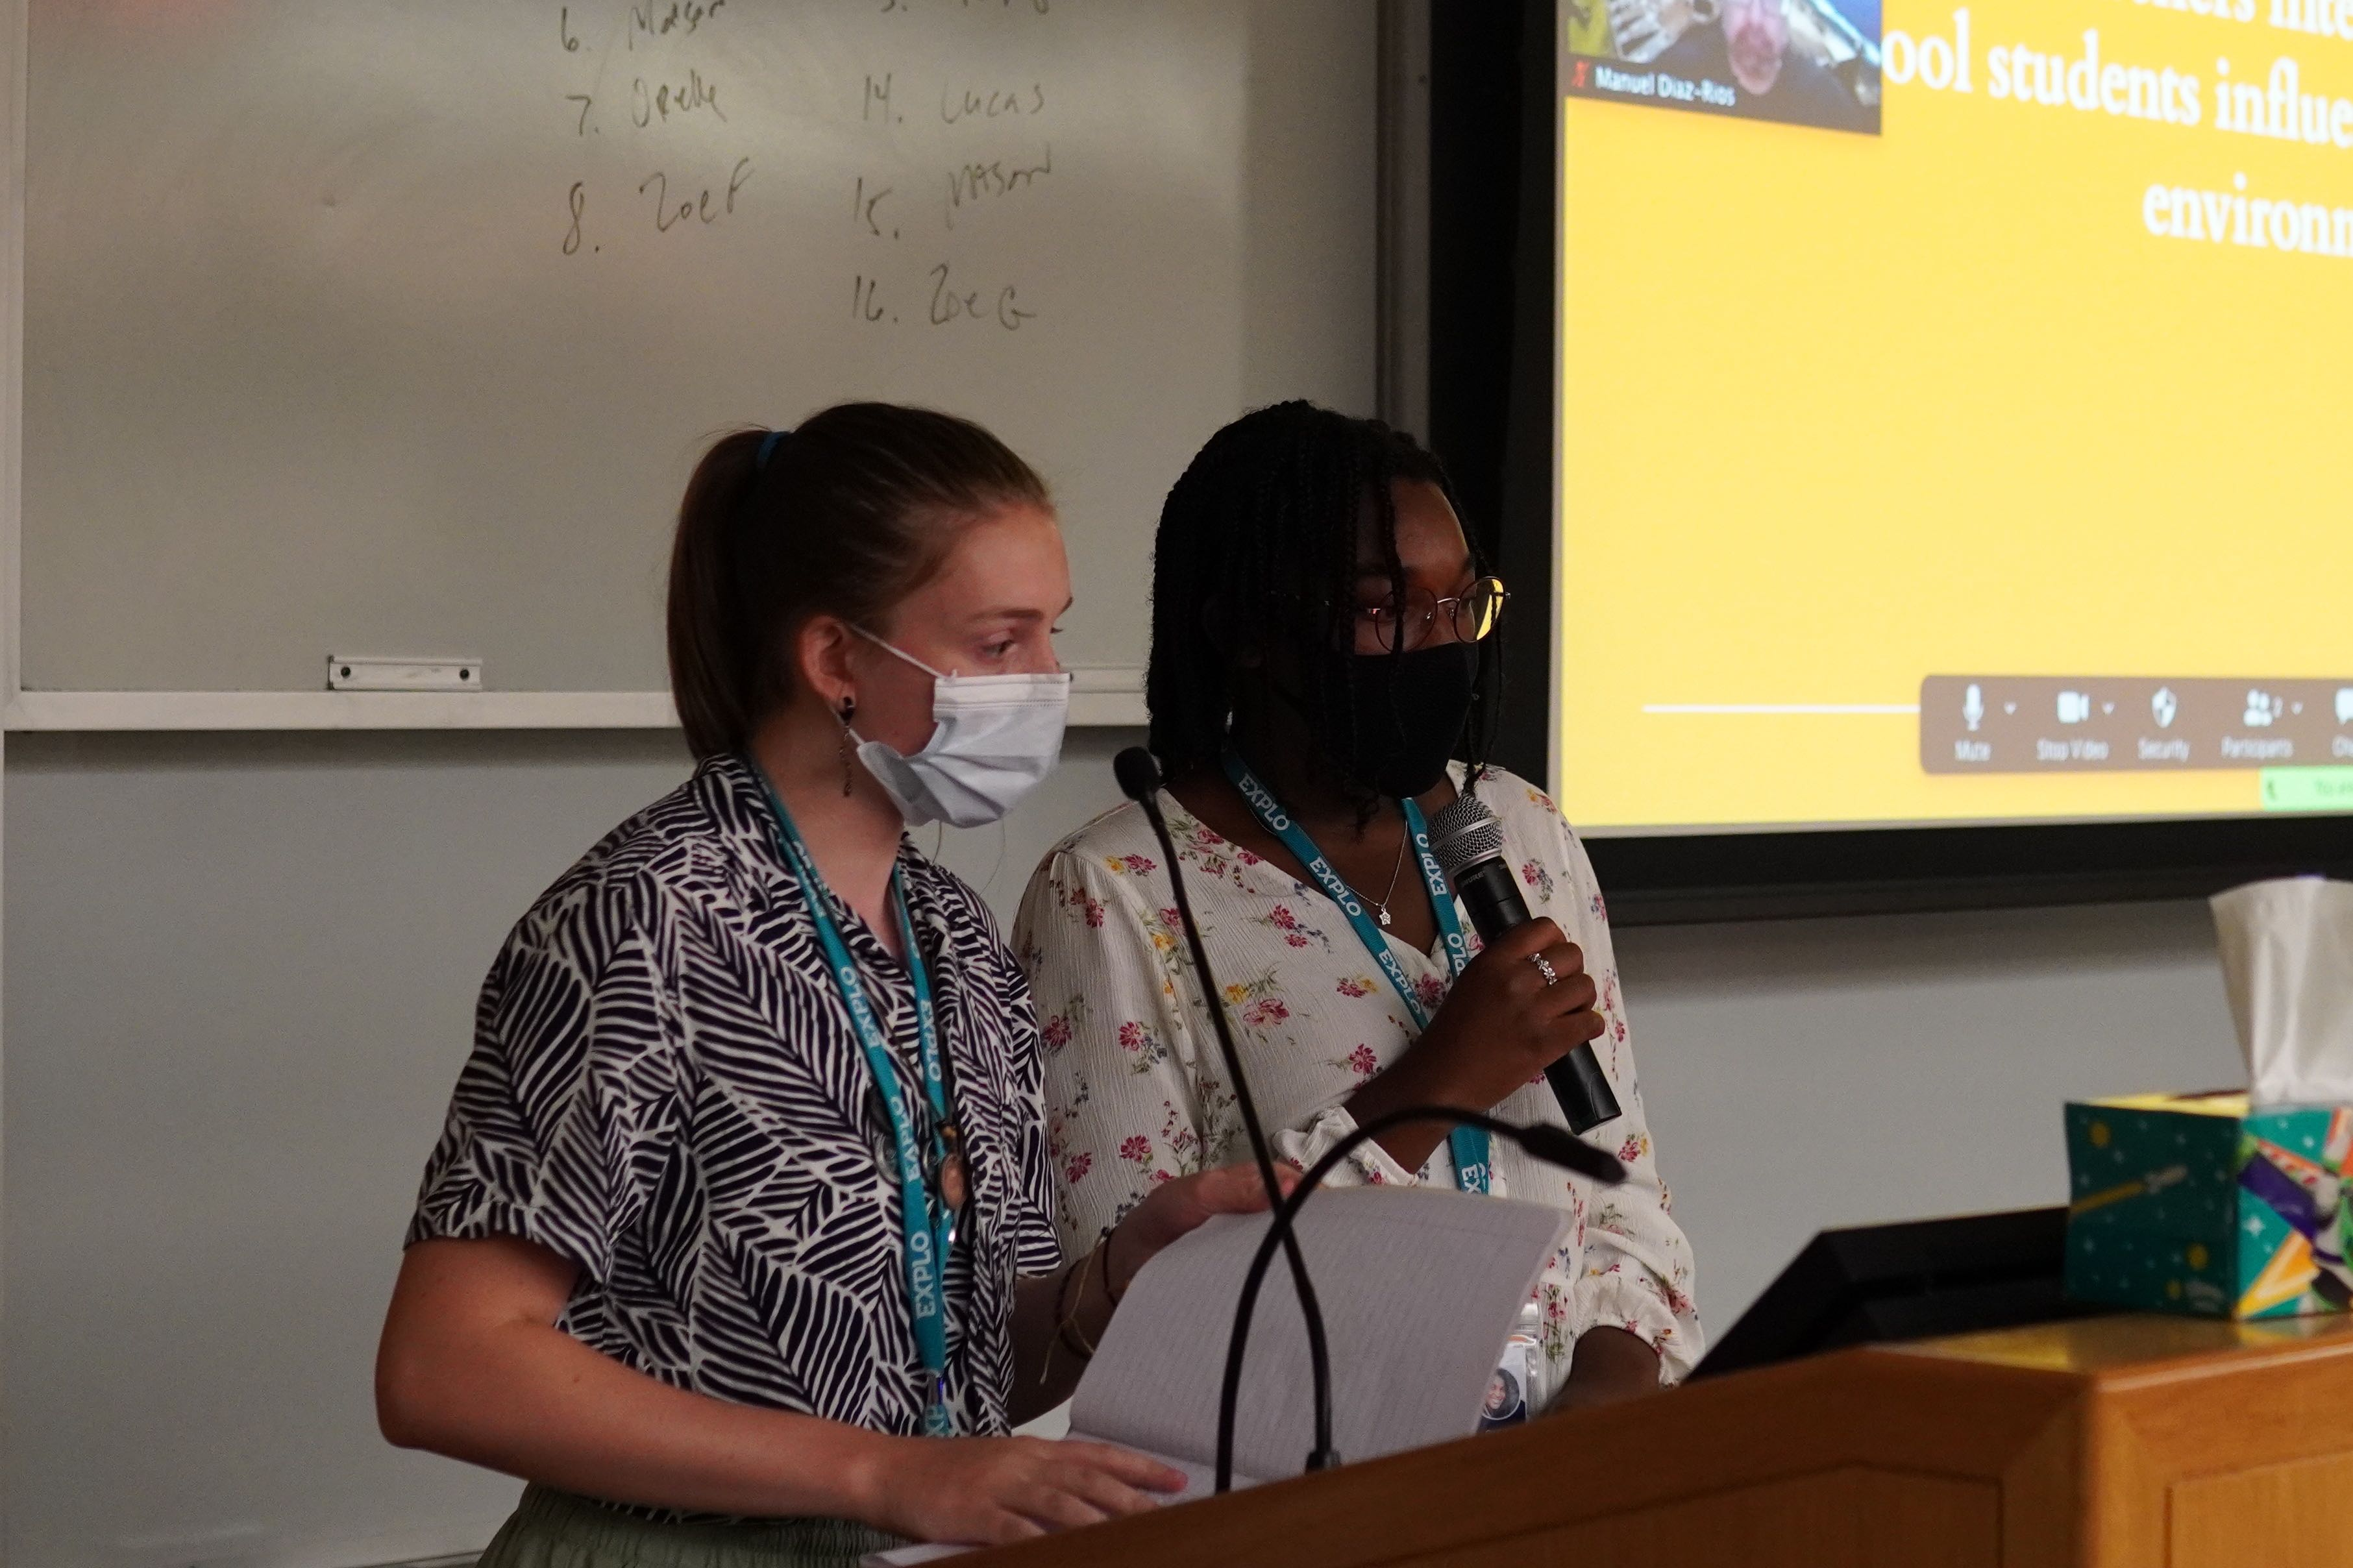 Two students stand at a podium and discuss their research.